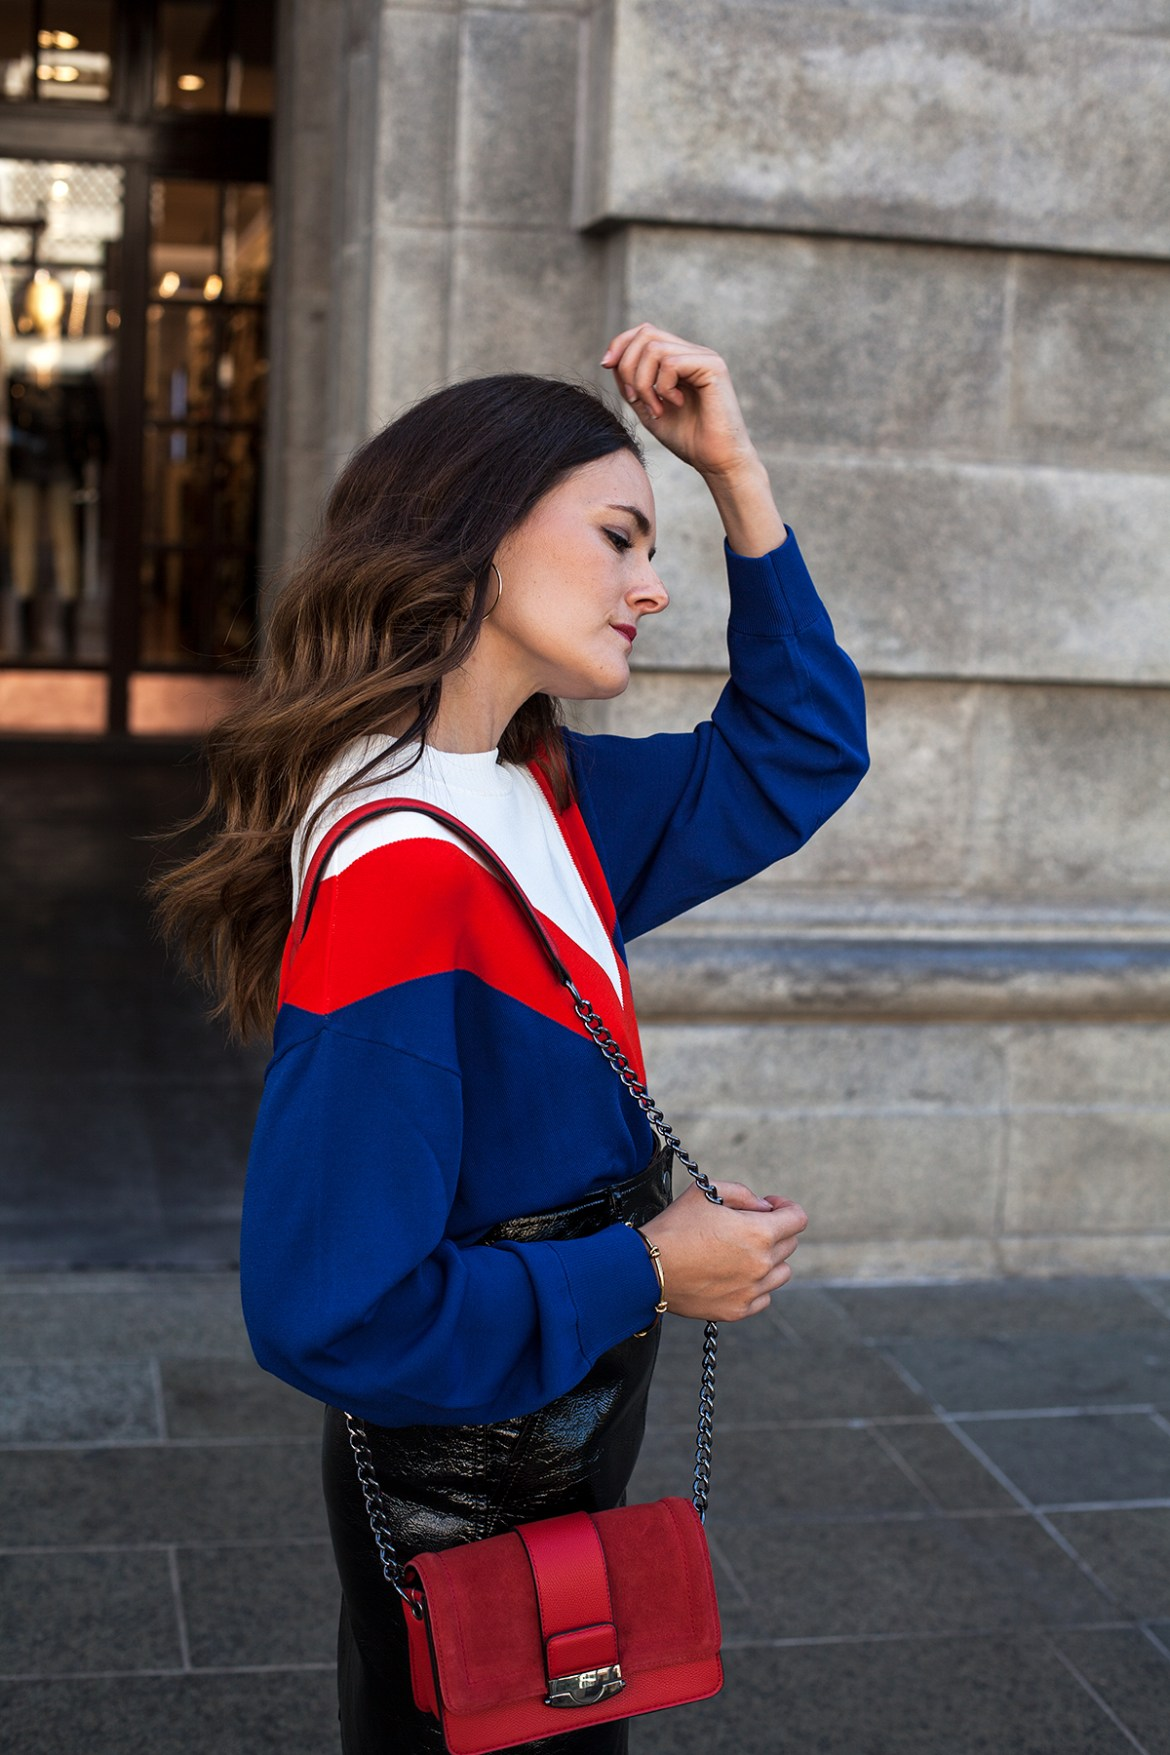 H&M street style for Perth H&M store on Jenelle, Inspiring Wit Australian fashion blogger. In vinyl mini skirt, red shoulder bag and blue and red v top street style in City of Perth